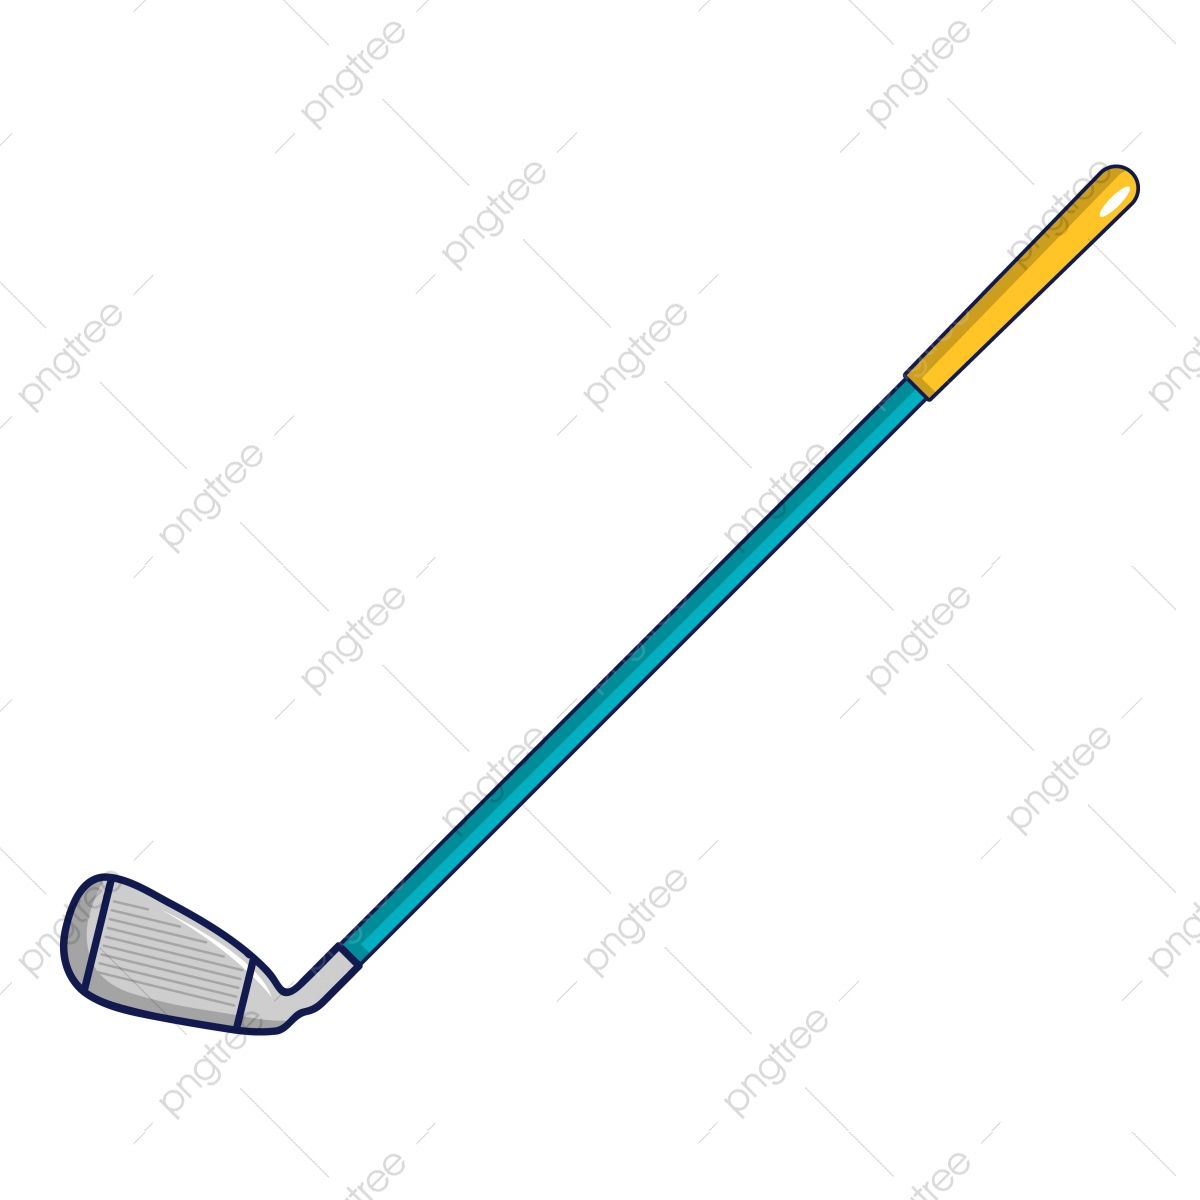 Golf Club Icon Cartoon Style Style Icons Cartoon Icons Club Icons Png And Vector With Transparent Background For Free Download